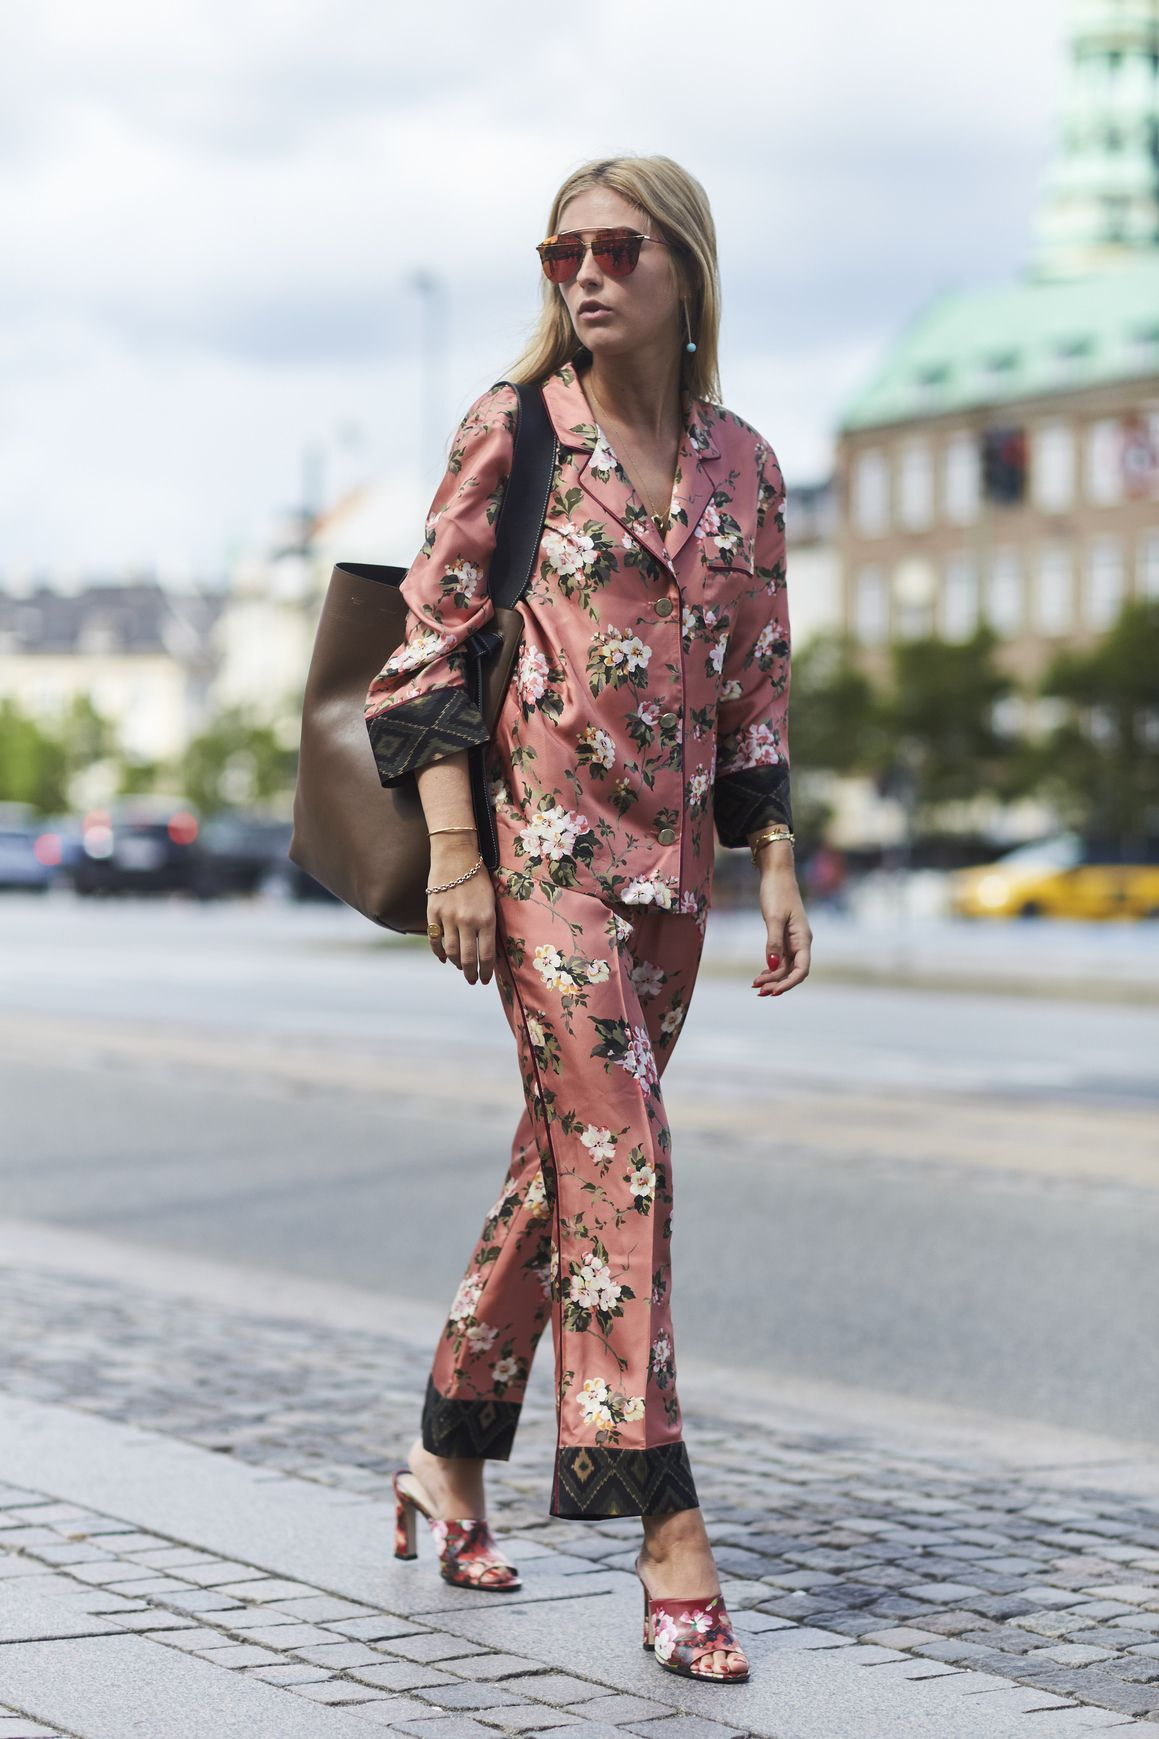 Spotted, streetstyle pink pyjama for on the streets.